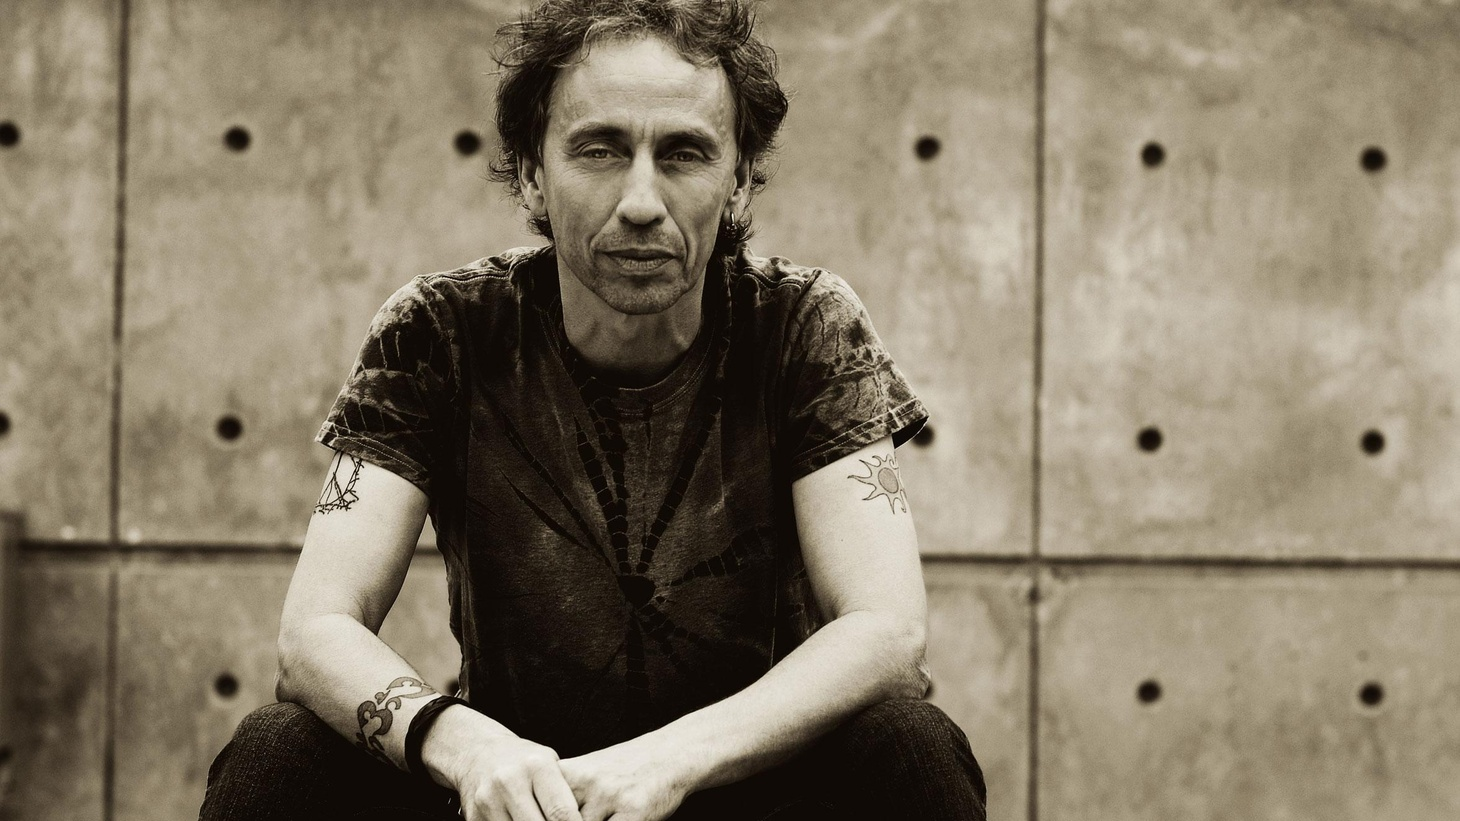 On this edition of Sounds Eclectic, host Nic Harcourt plays new, upcoming and recent releases from Sonic Youth, Corrine Bailey Rae, and the latest from Tom Verlaine. Plus a live in-studio performance from Infadels, all this and much more on Sounds Eclectic.